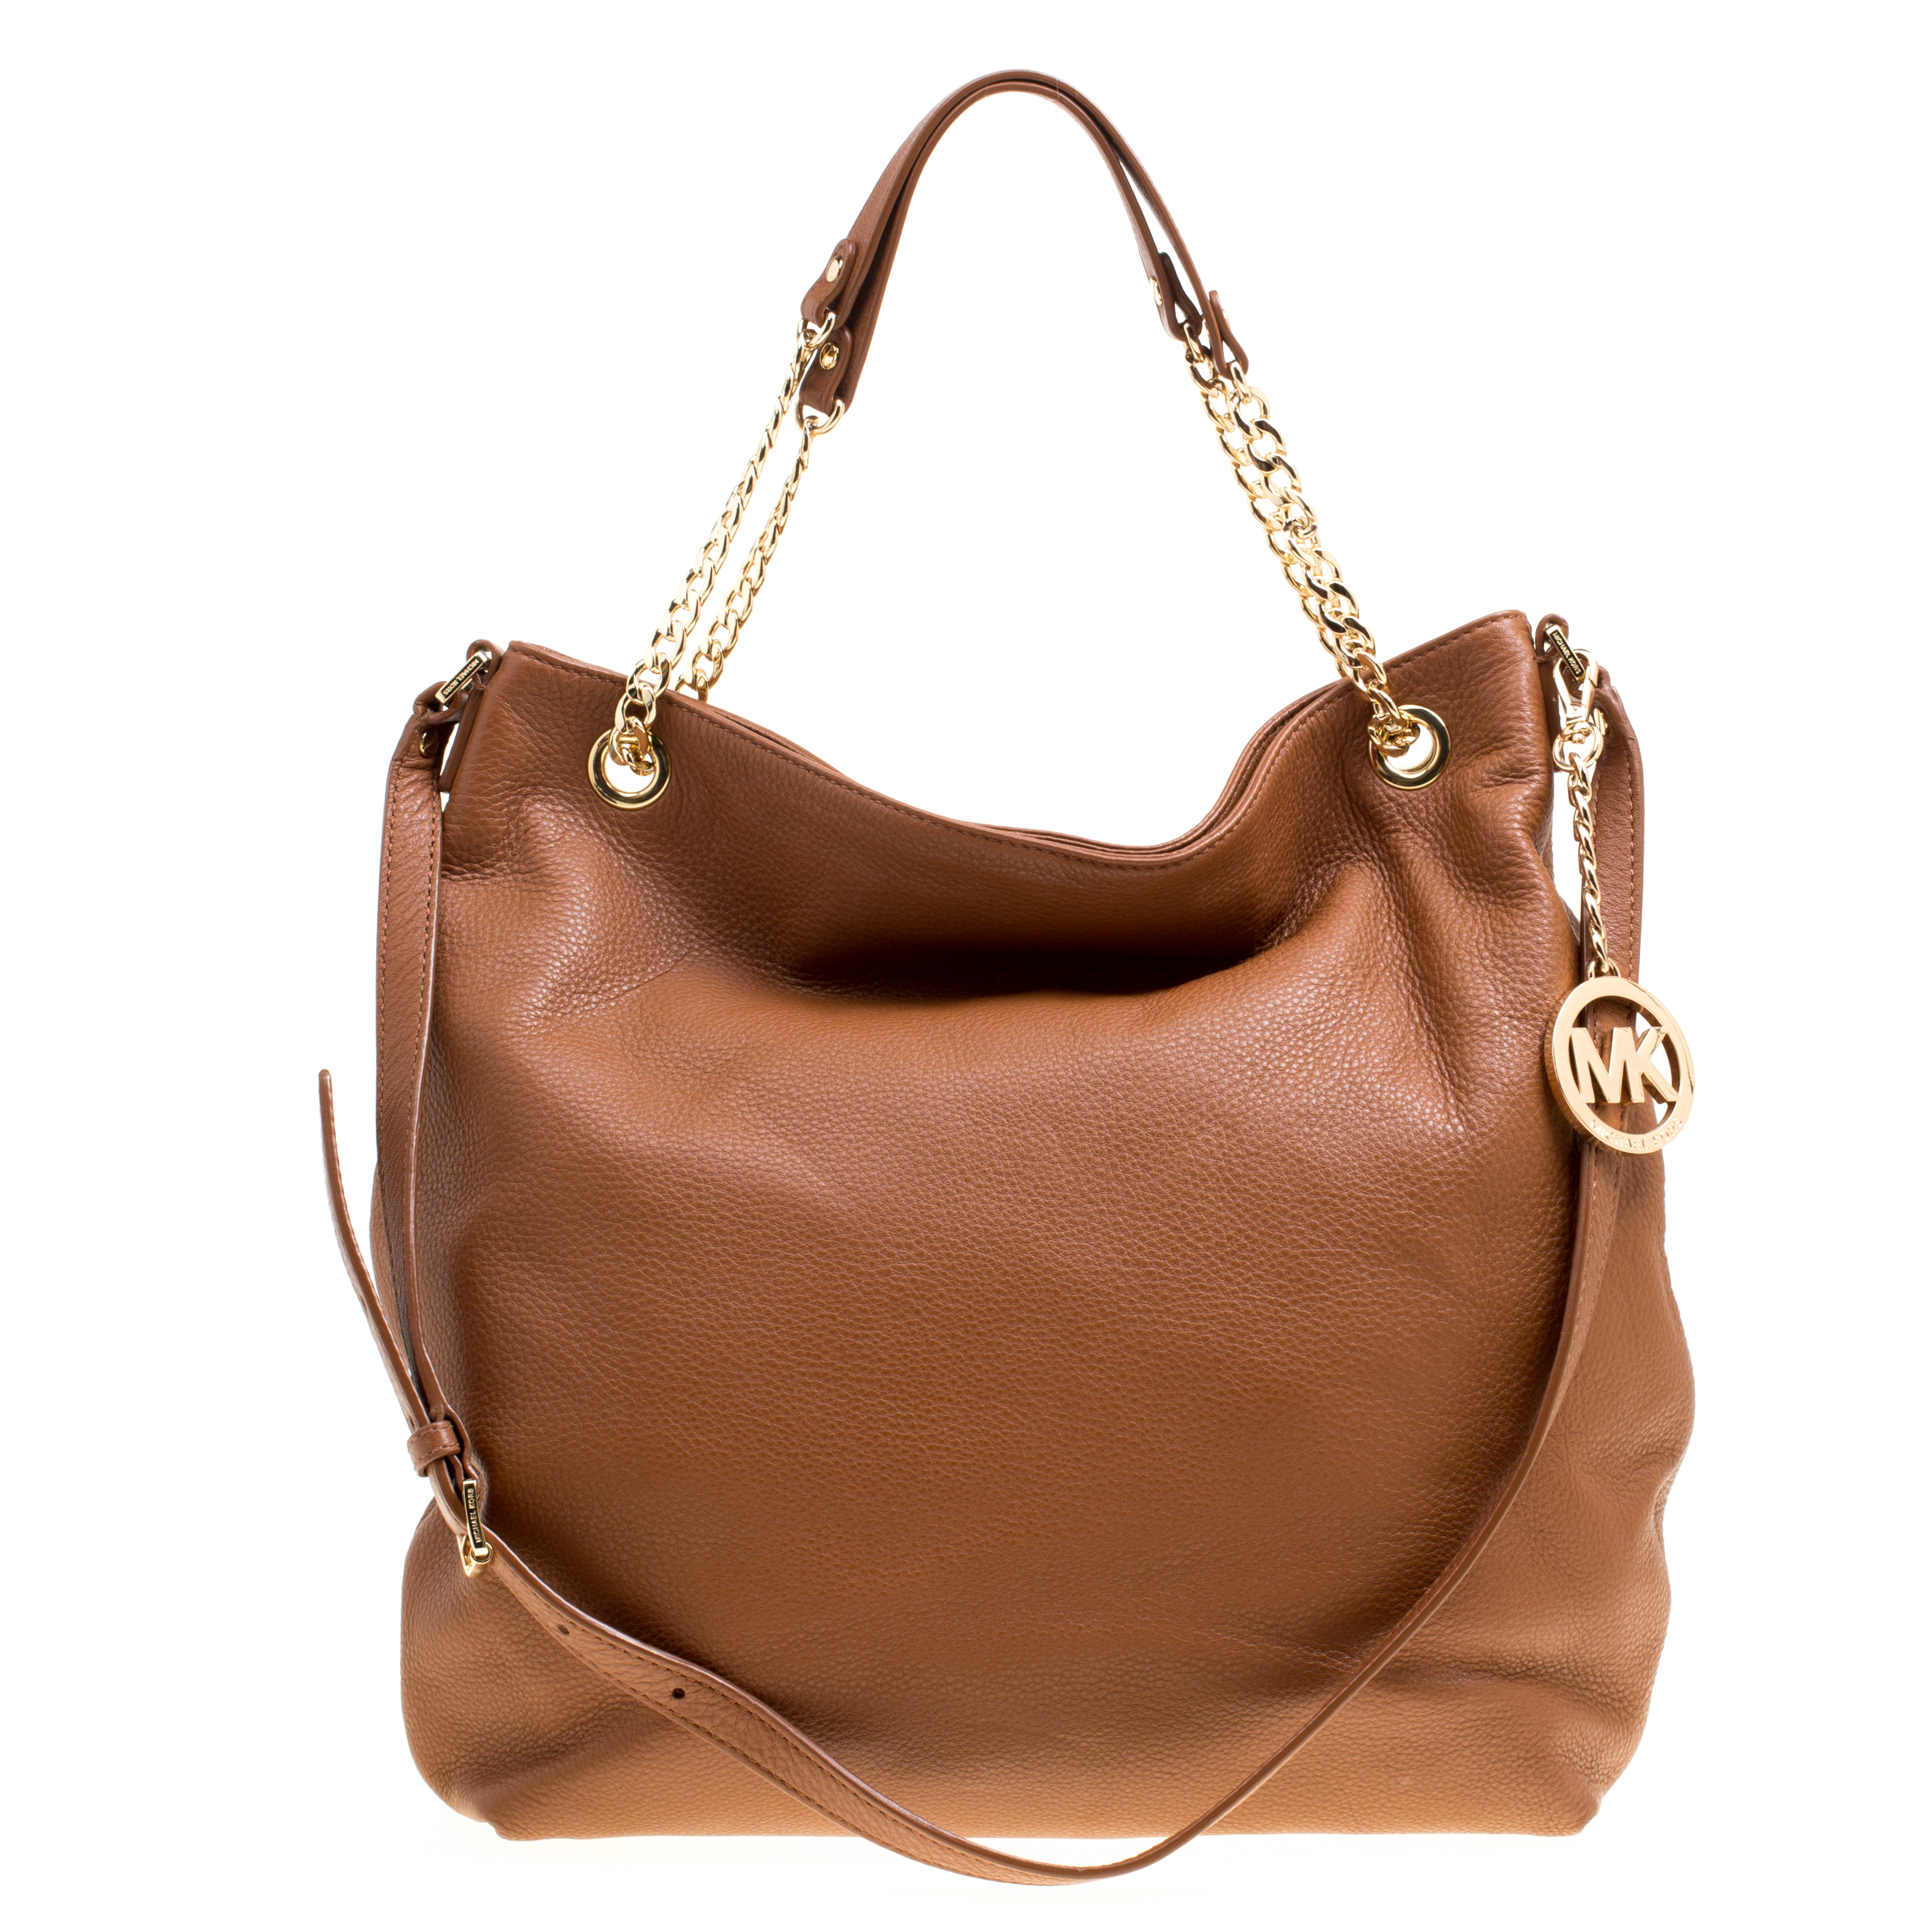 d178a8e51d6c Buy Michael Kors Brown Leather Jet Set Chain Hobo 161630 at best ...